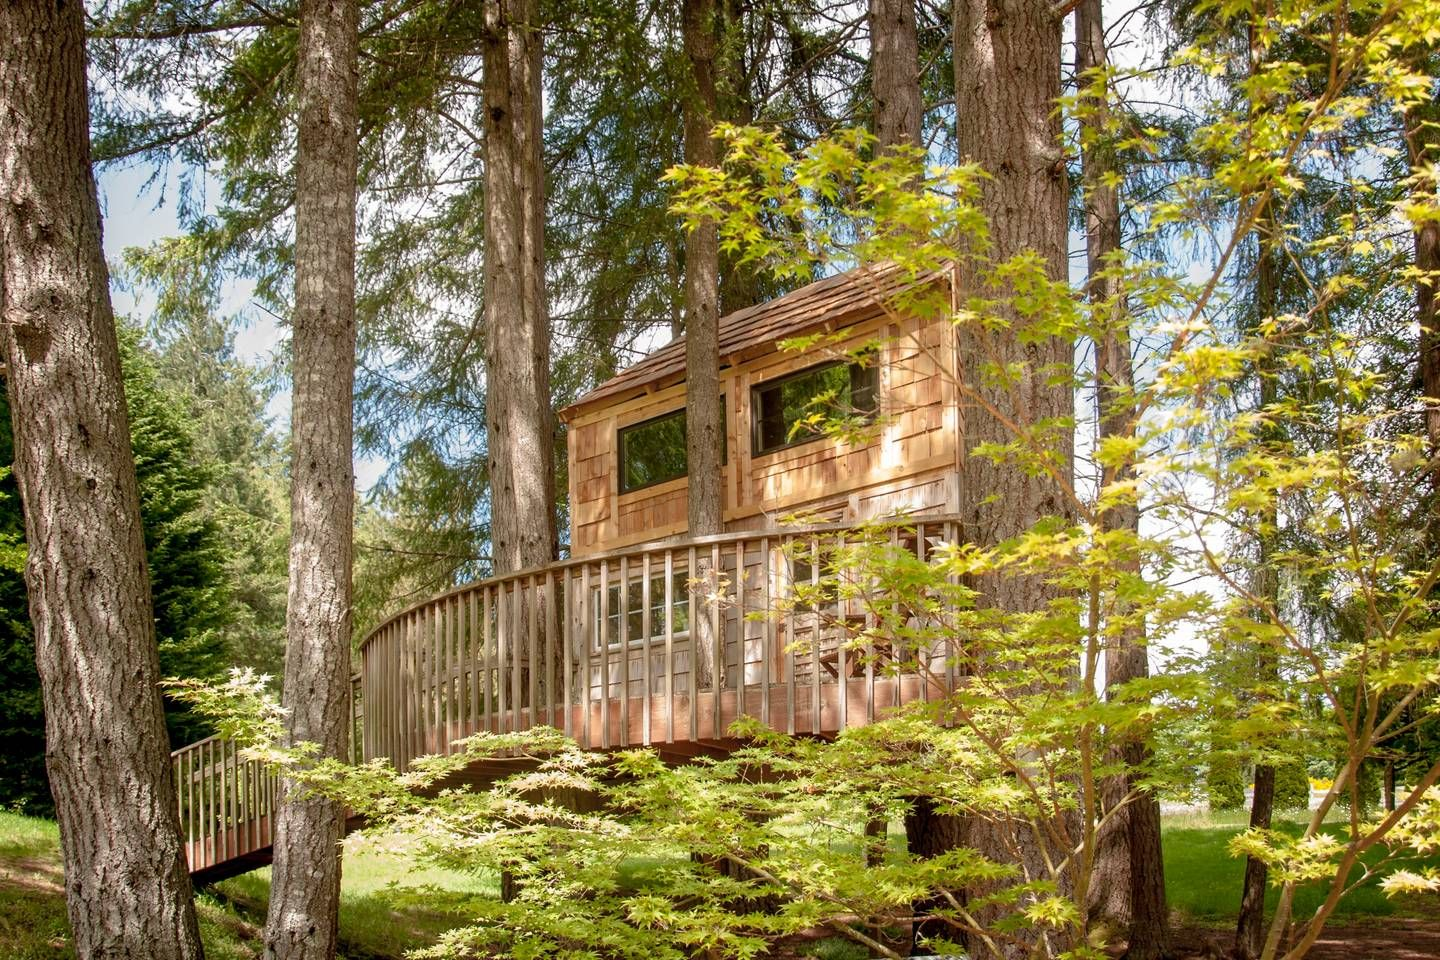 Meadowhawk Sanctuary Treehouse Bed and breakfasts for